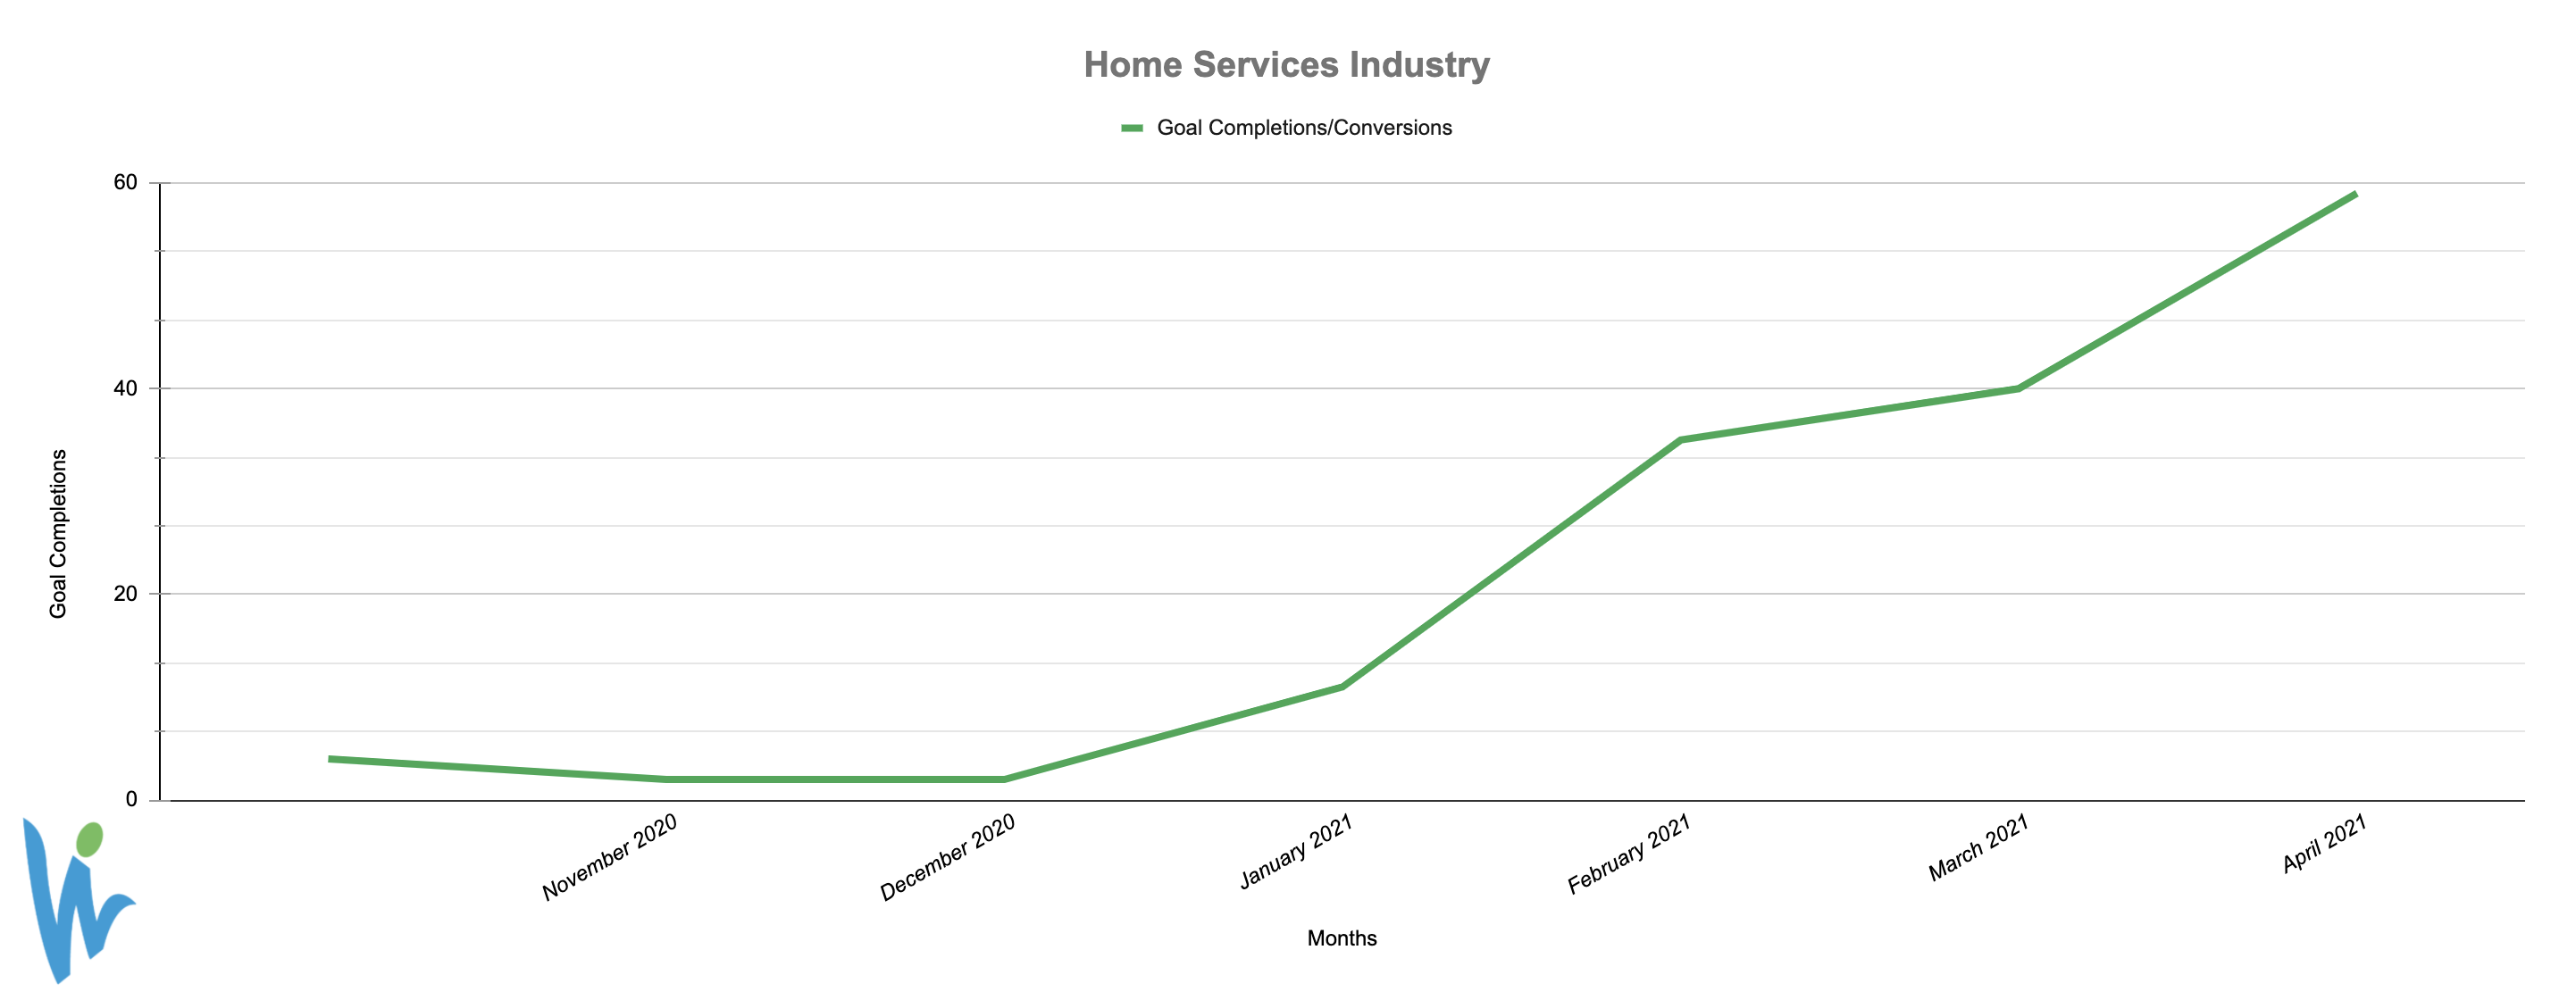 Home Services Industry Conversions Graph